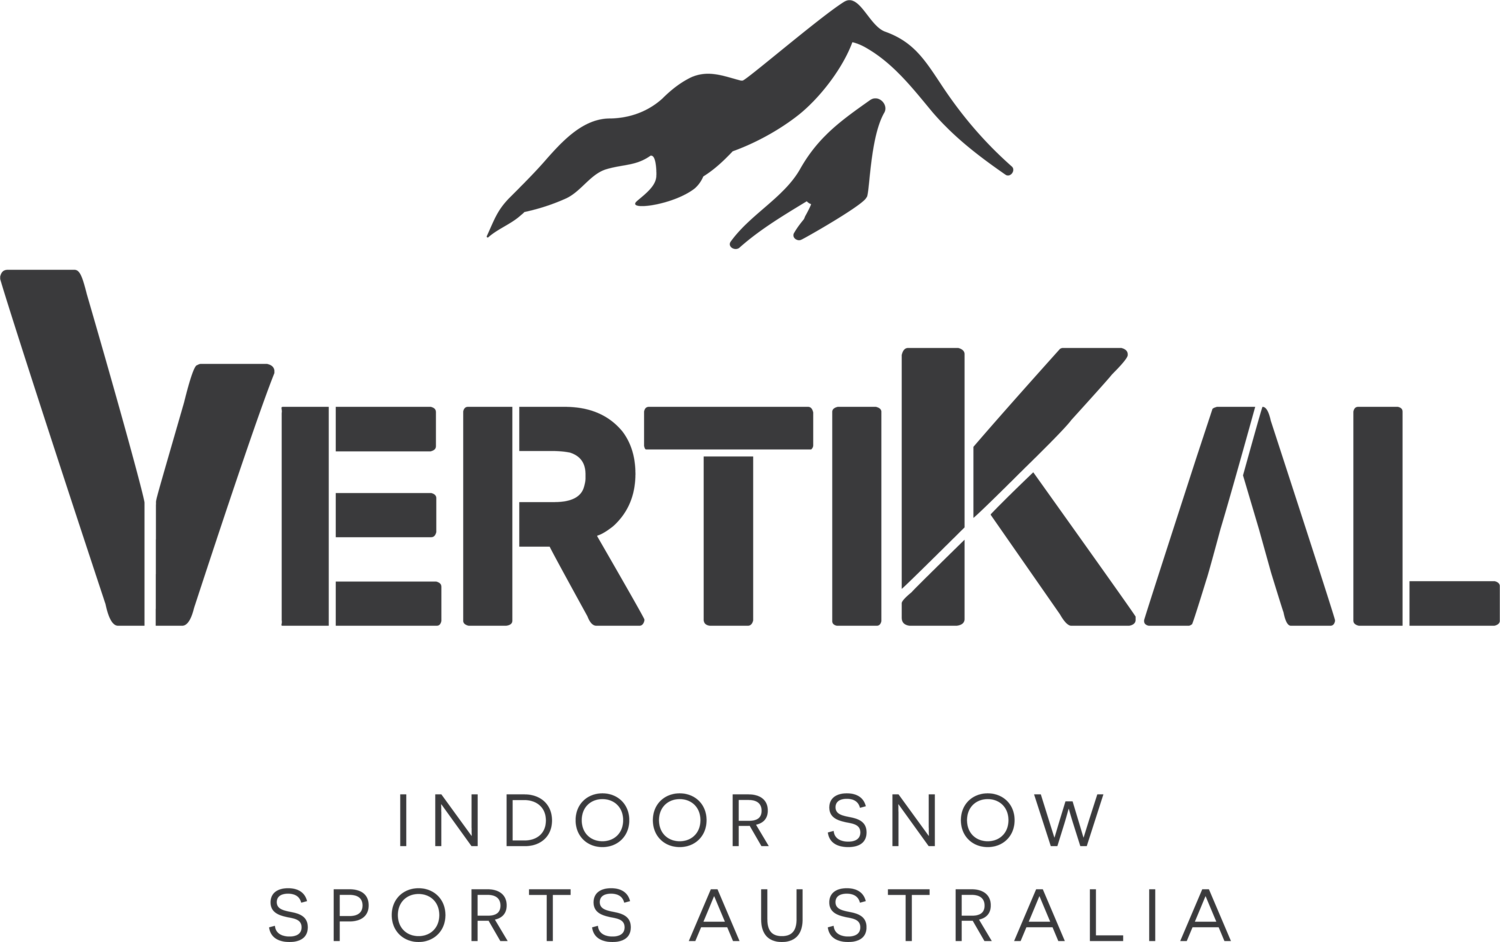 Vertikal Indoor Snow Sports